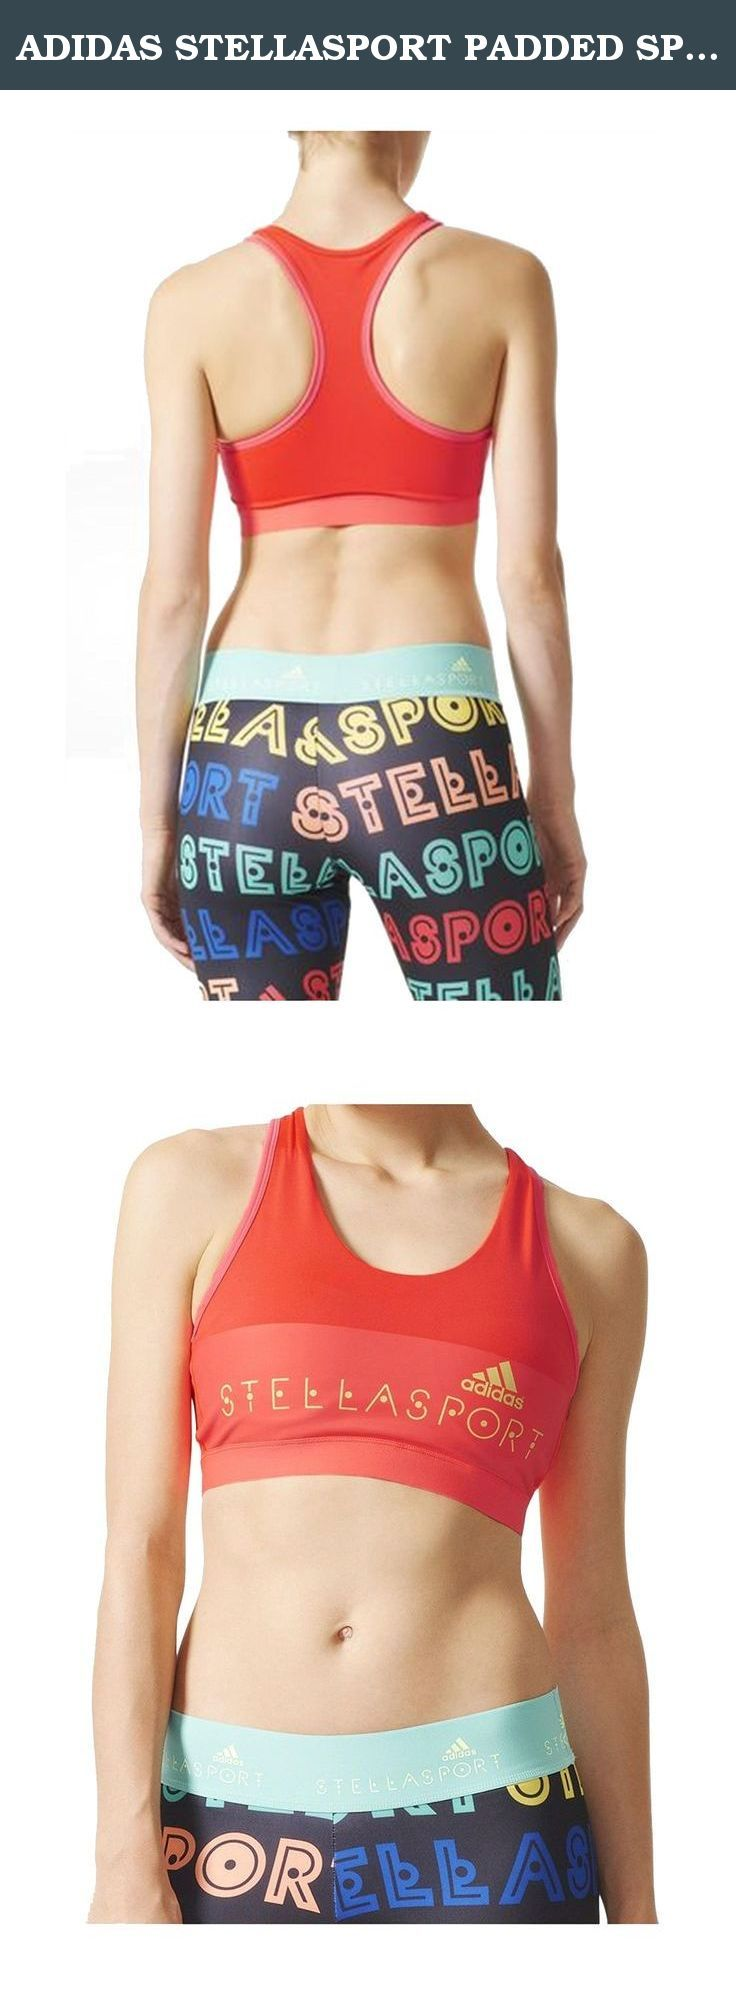 ADIDAS STELLASPORT PADDED SPORT BRA (M). Fresh pops of colour and bold patterns define this season's adidas STELLASPORT collection. A team effort between adidas and Stella McCartney, the line puts Stella's fun, youthful spin on favourite sportswear styles. Designed for medium support, this adidas STELLASPORT workout bra is built of super-breathable fabric so you stay dry and comfortable. With contrasting edging and a front-and-centre Stella logo.